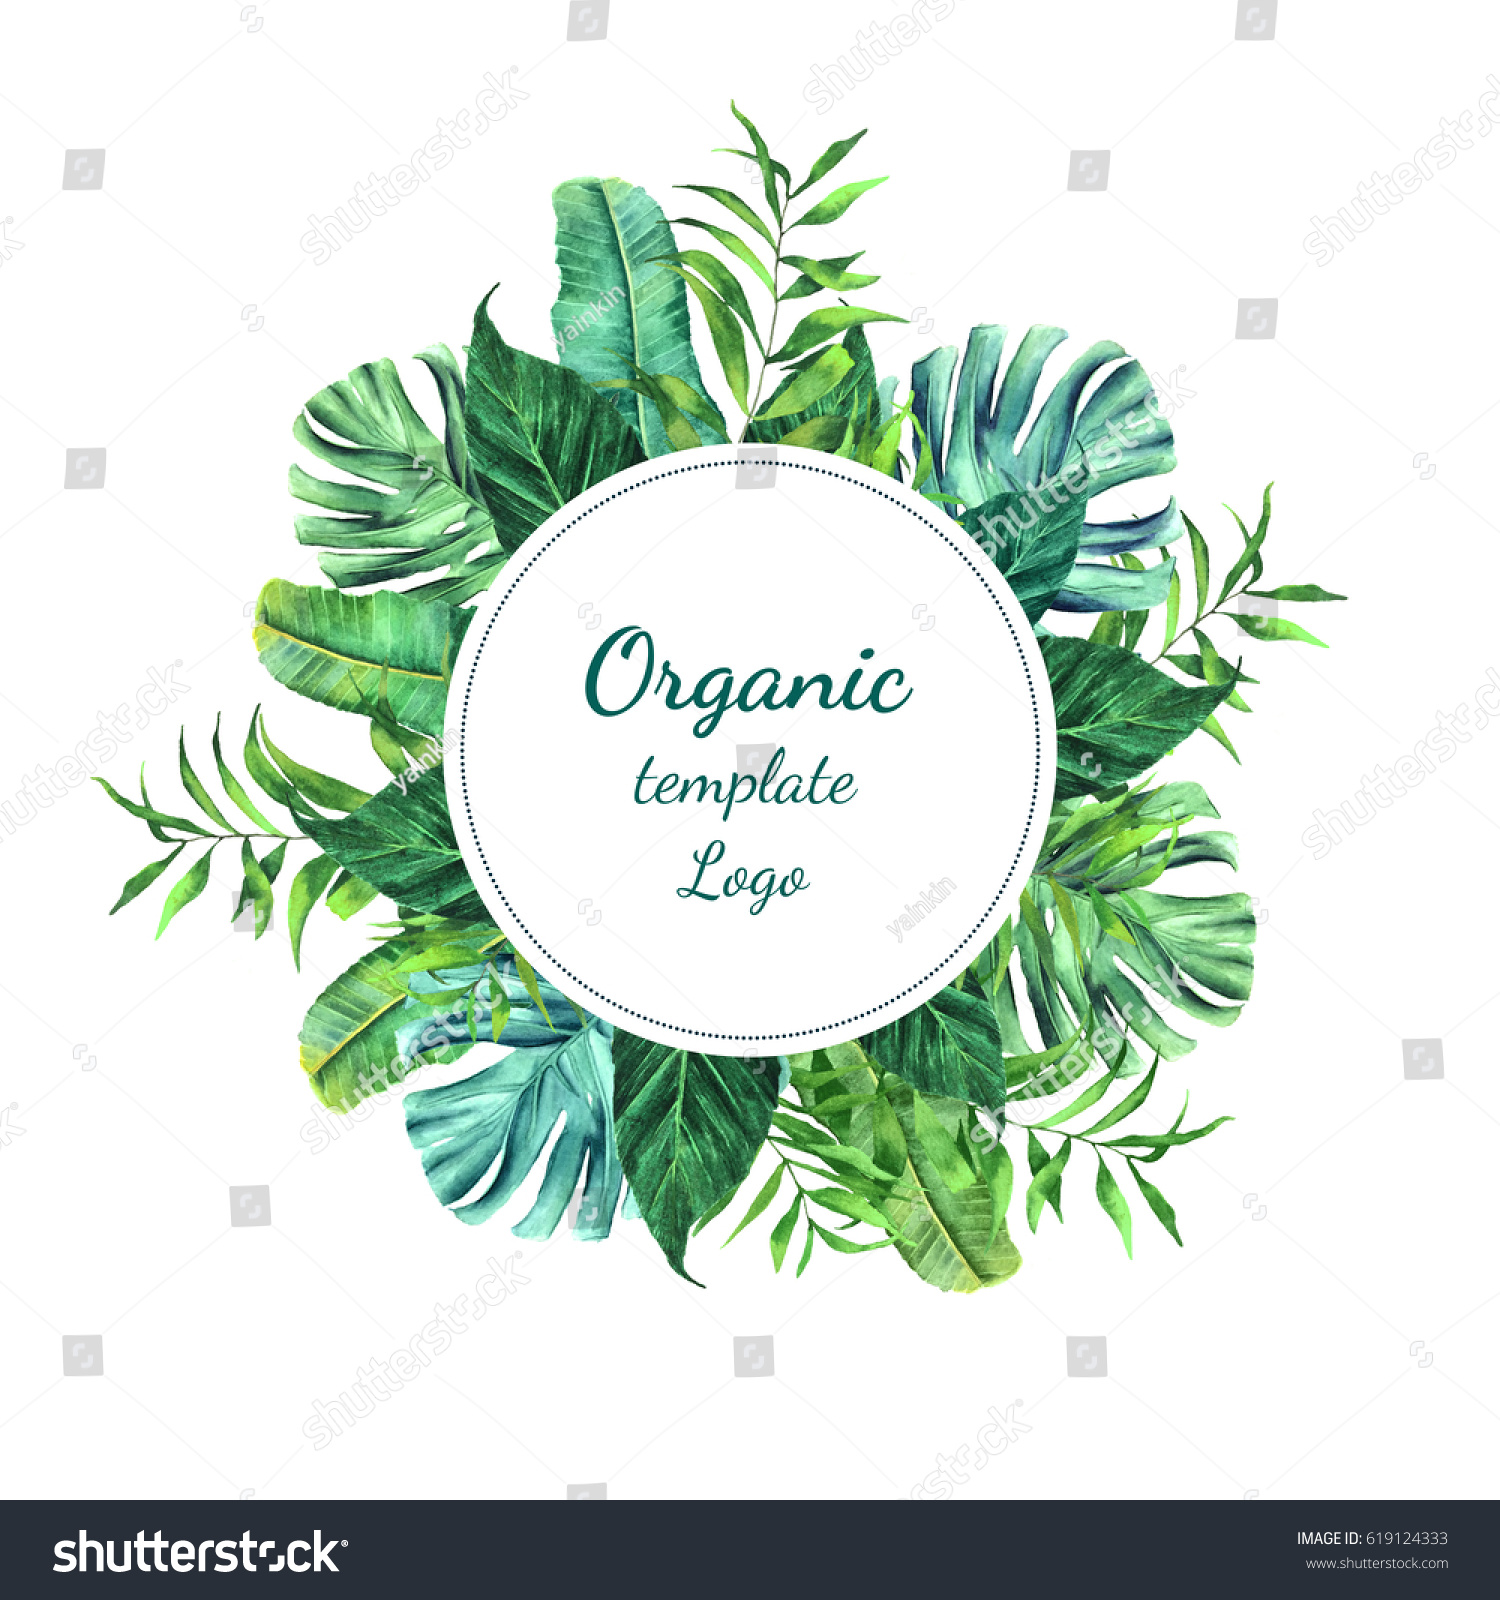 template organic tropical leaves logo watercolorのイラスト素材